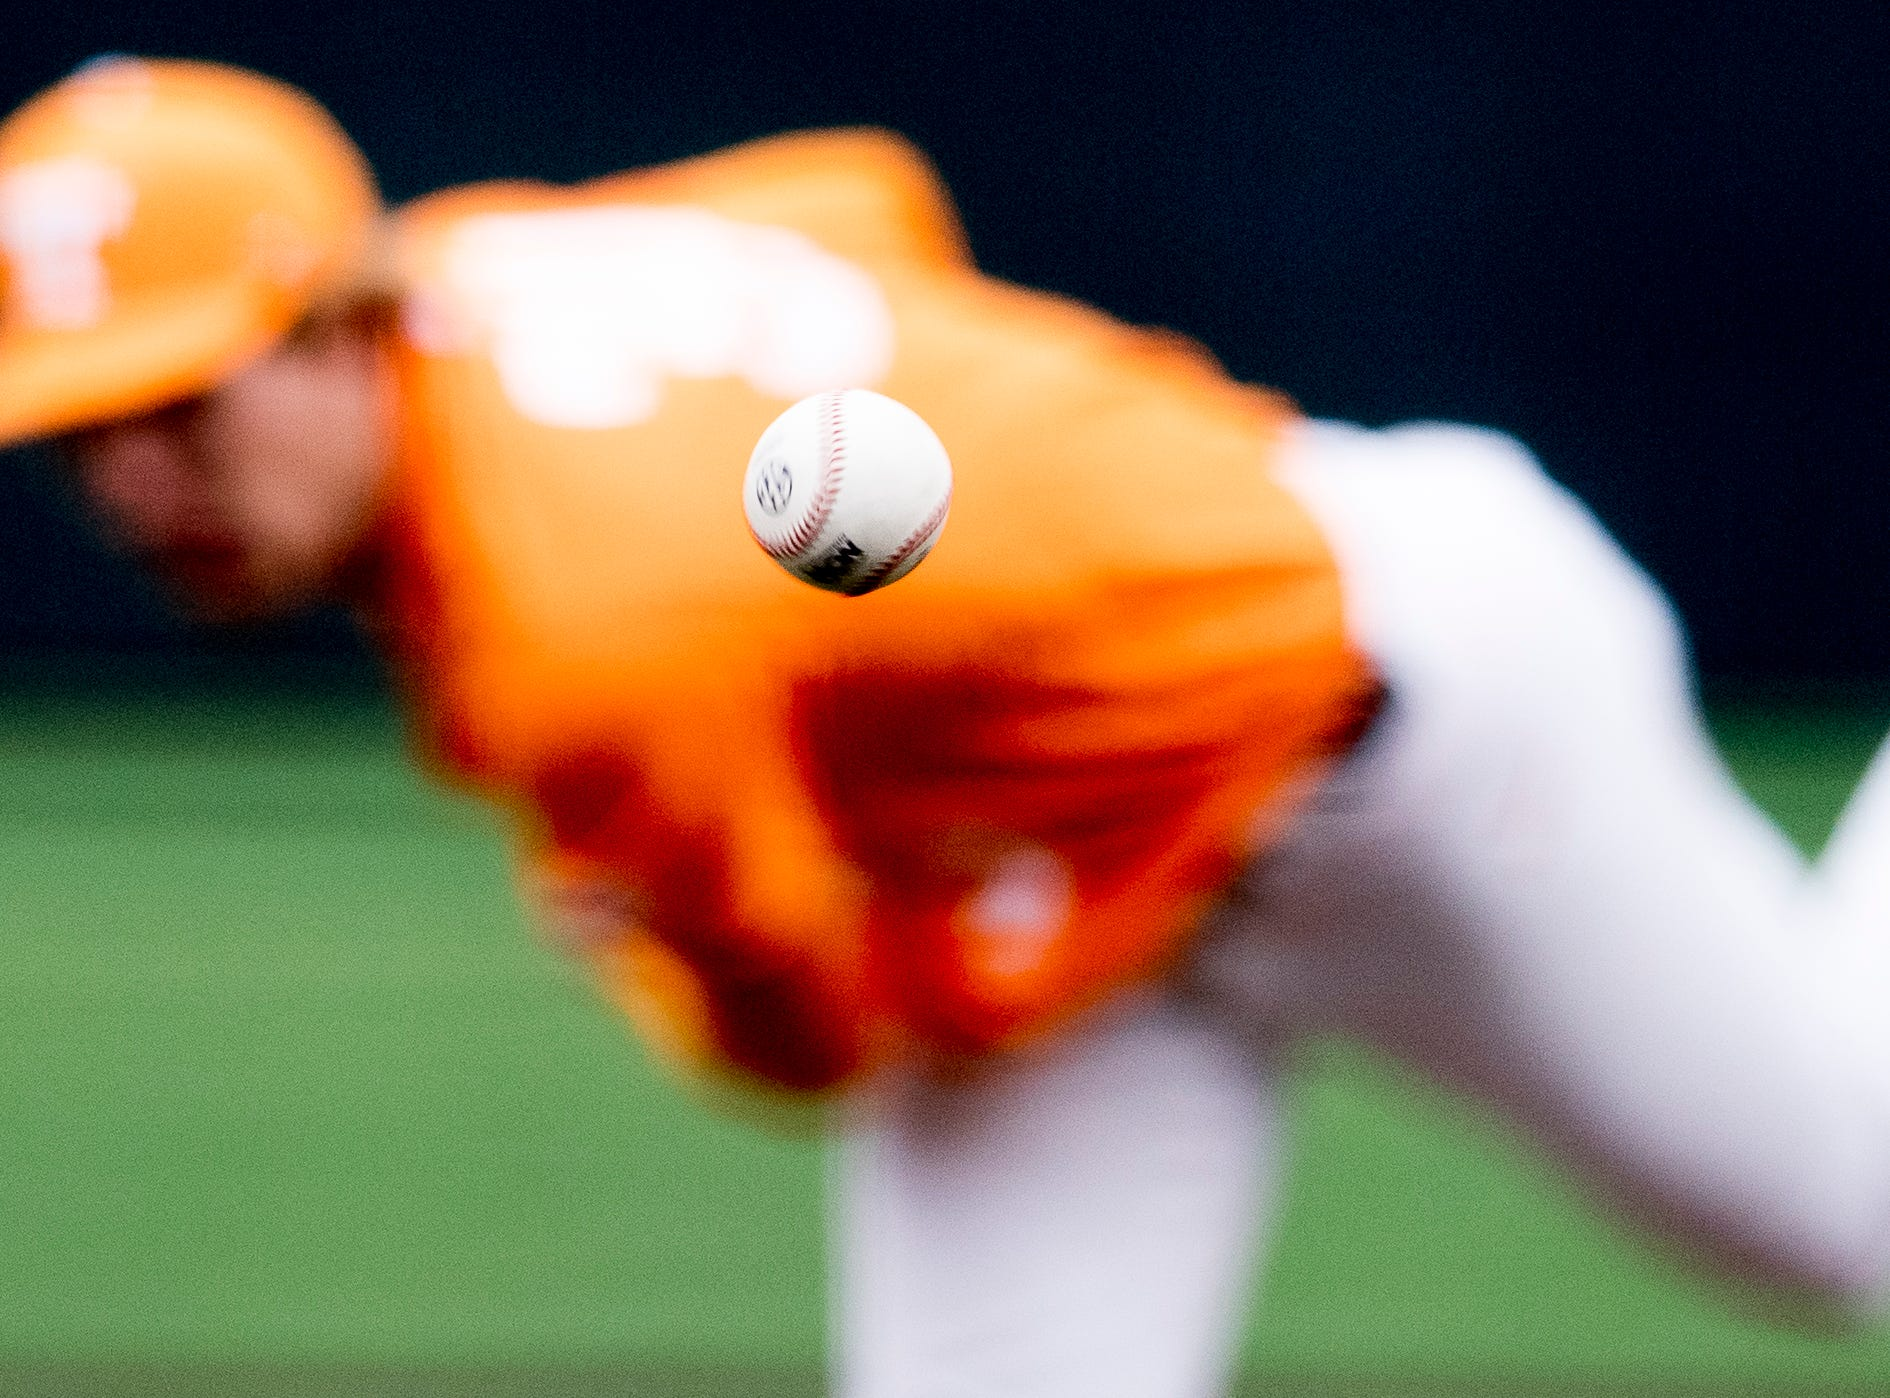 Tennessee pitcher Garrett Crochet (34) pitches the ball during a Tennessee baseball home opener game against Appalachian State at Lindsey Nelson Stadium in Knoxville, Tennessee on Saturday, February 16, 2019.